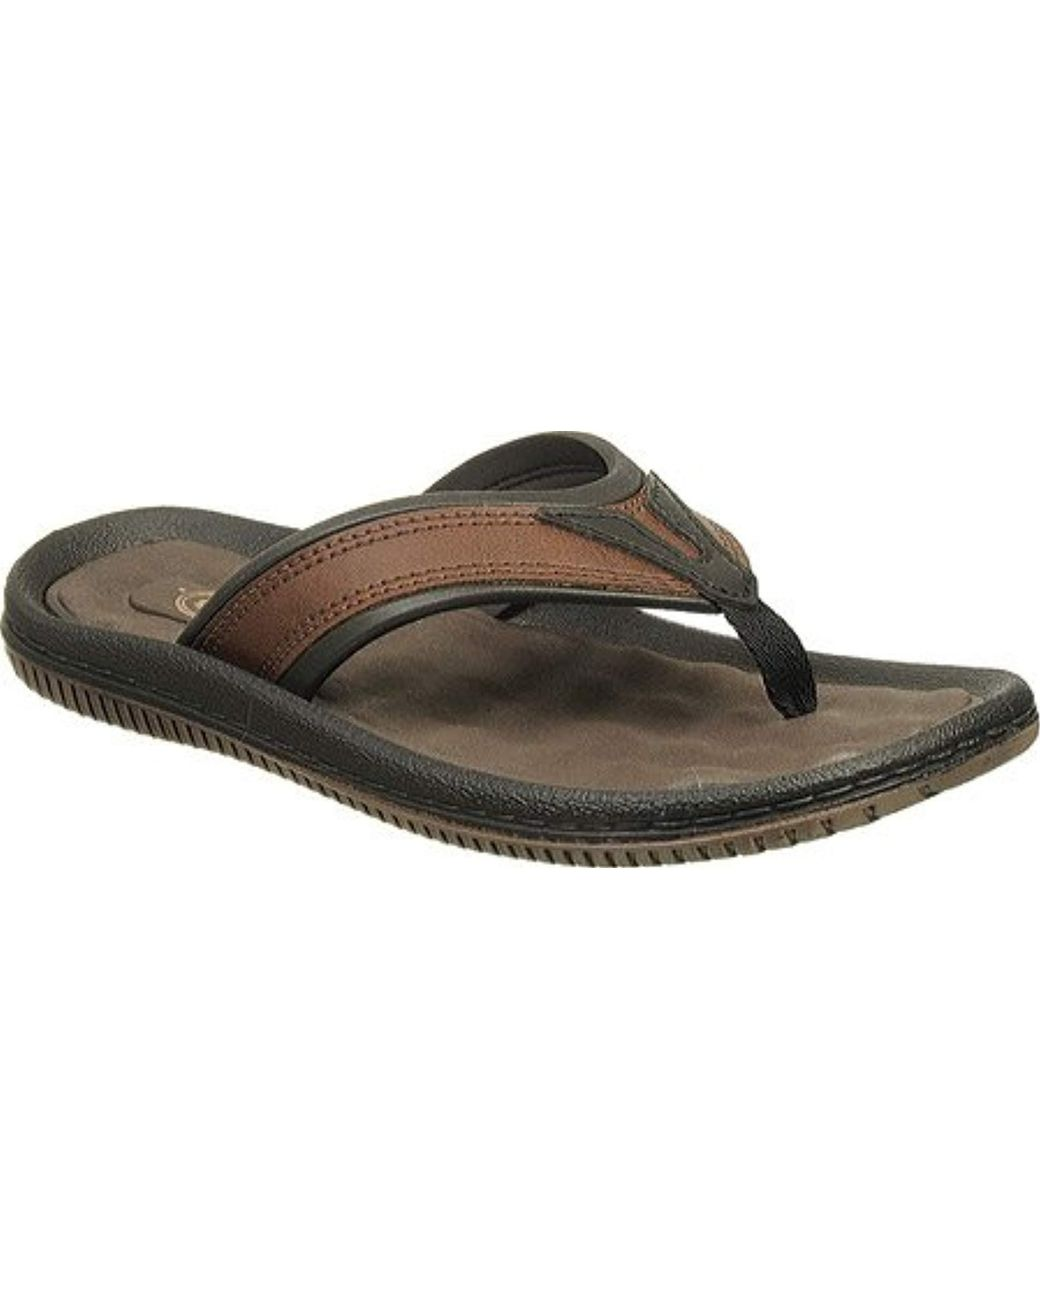 452e91482 Lyst - Dr. Scholls Dr. Scholl s Donnar Flip Flop in Black for Men